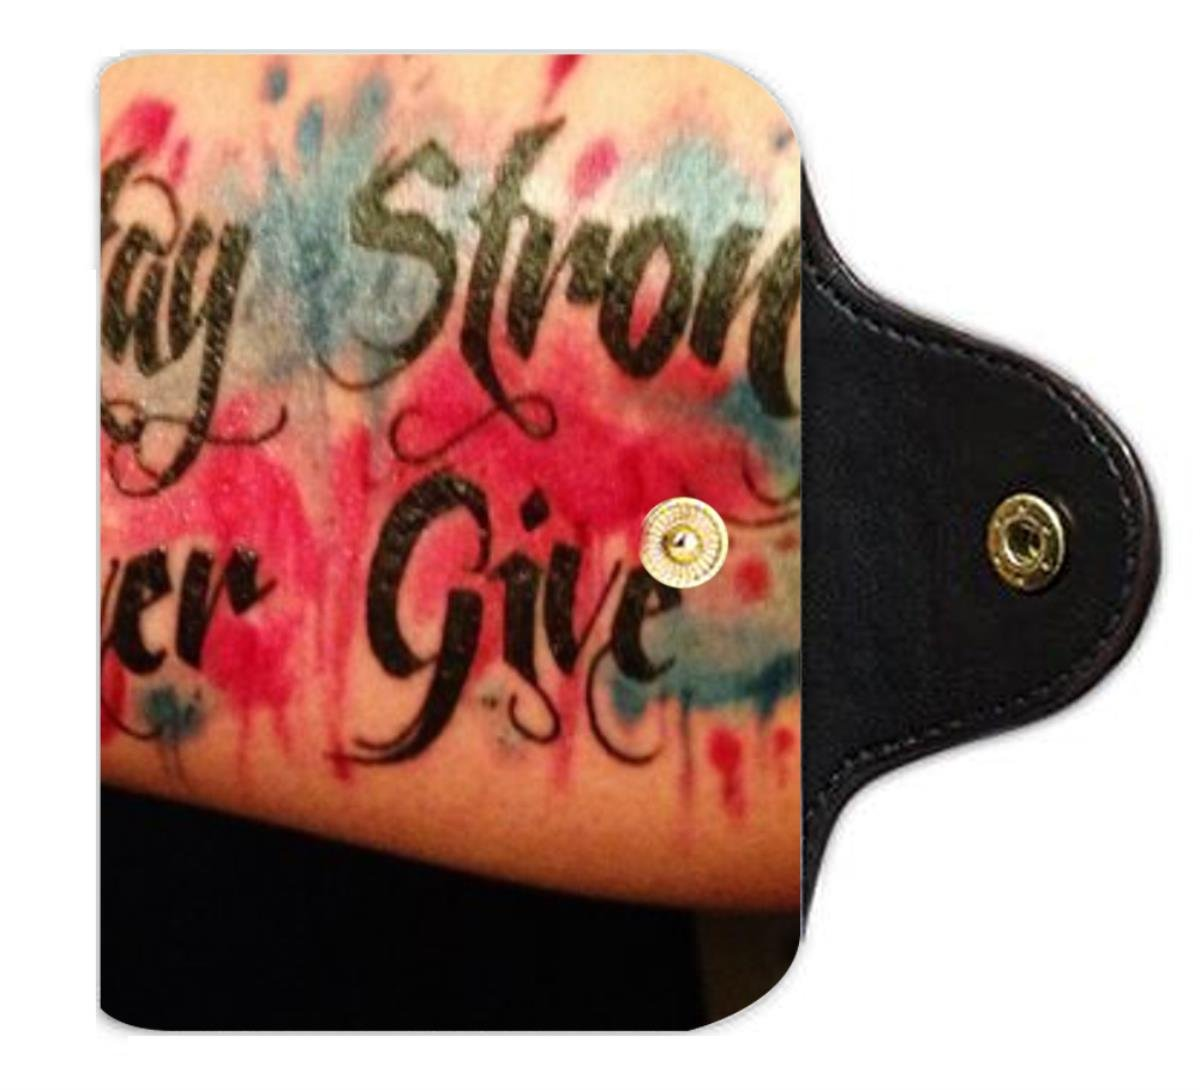 Stay Strong Never Give Up Tattoo PU Leather office Business Card Holder PU Leather office Business Card Holder